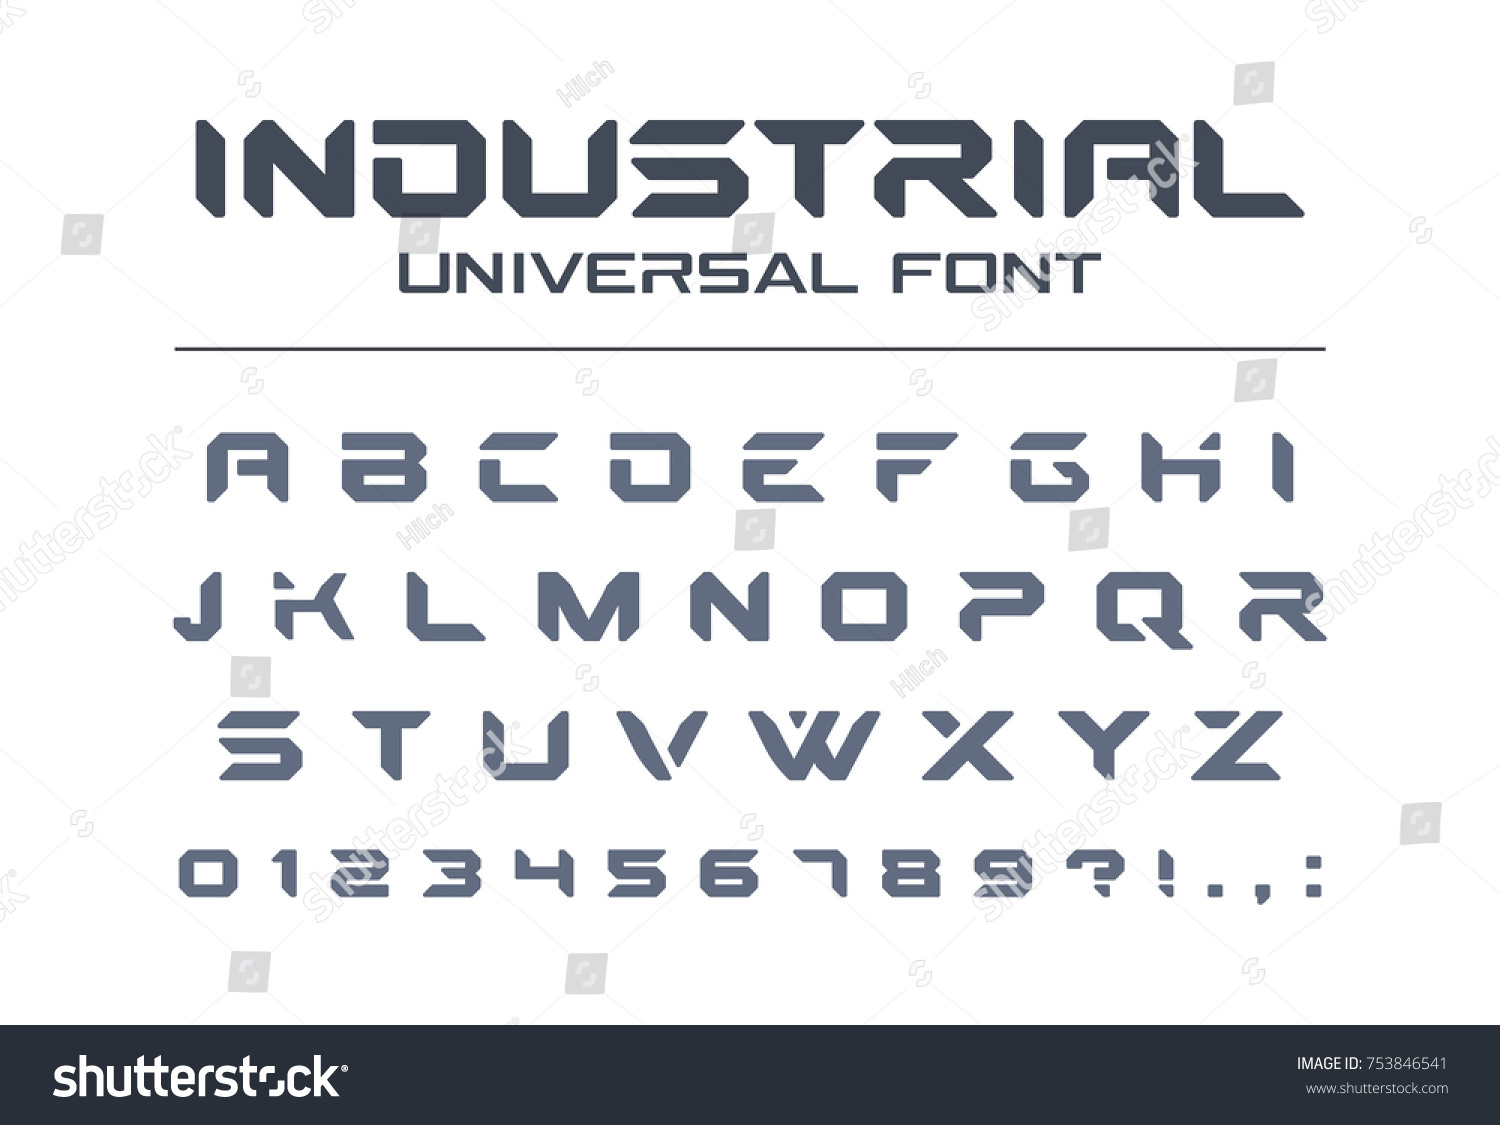 Hard Style Universal Font Military Army Stock Vector Royalty Free